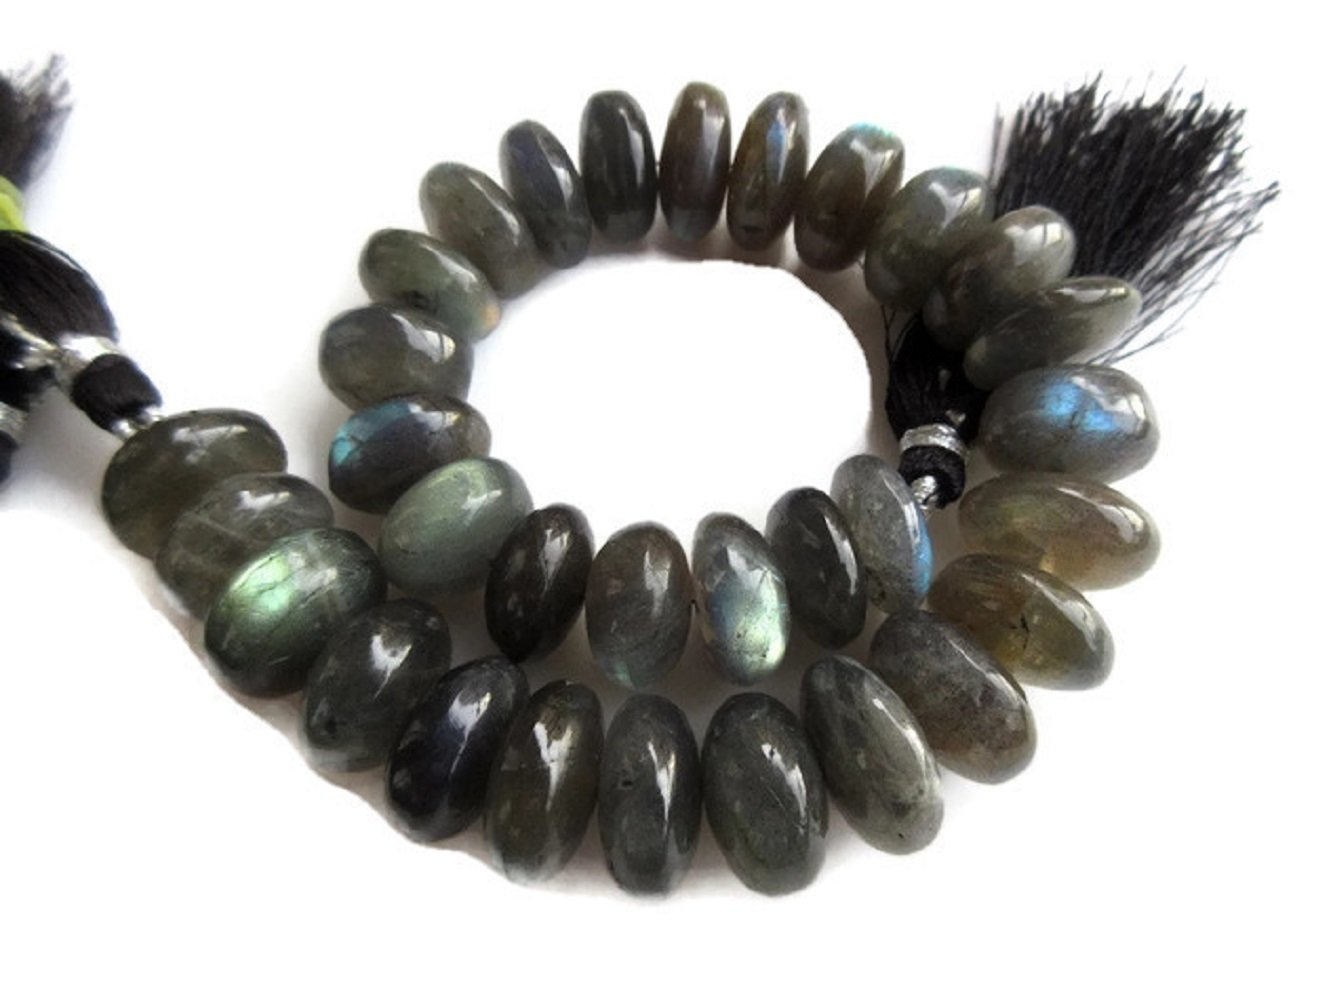 AAA Natural Labradorite Smooth Rondelle Beads, 13mm to 14mm Beads, Labradorite Jewelry, GDS959 (9 Inch)